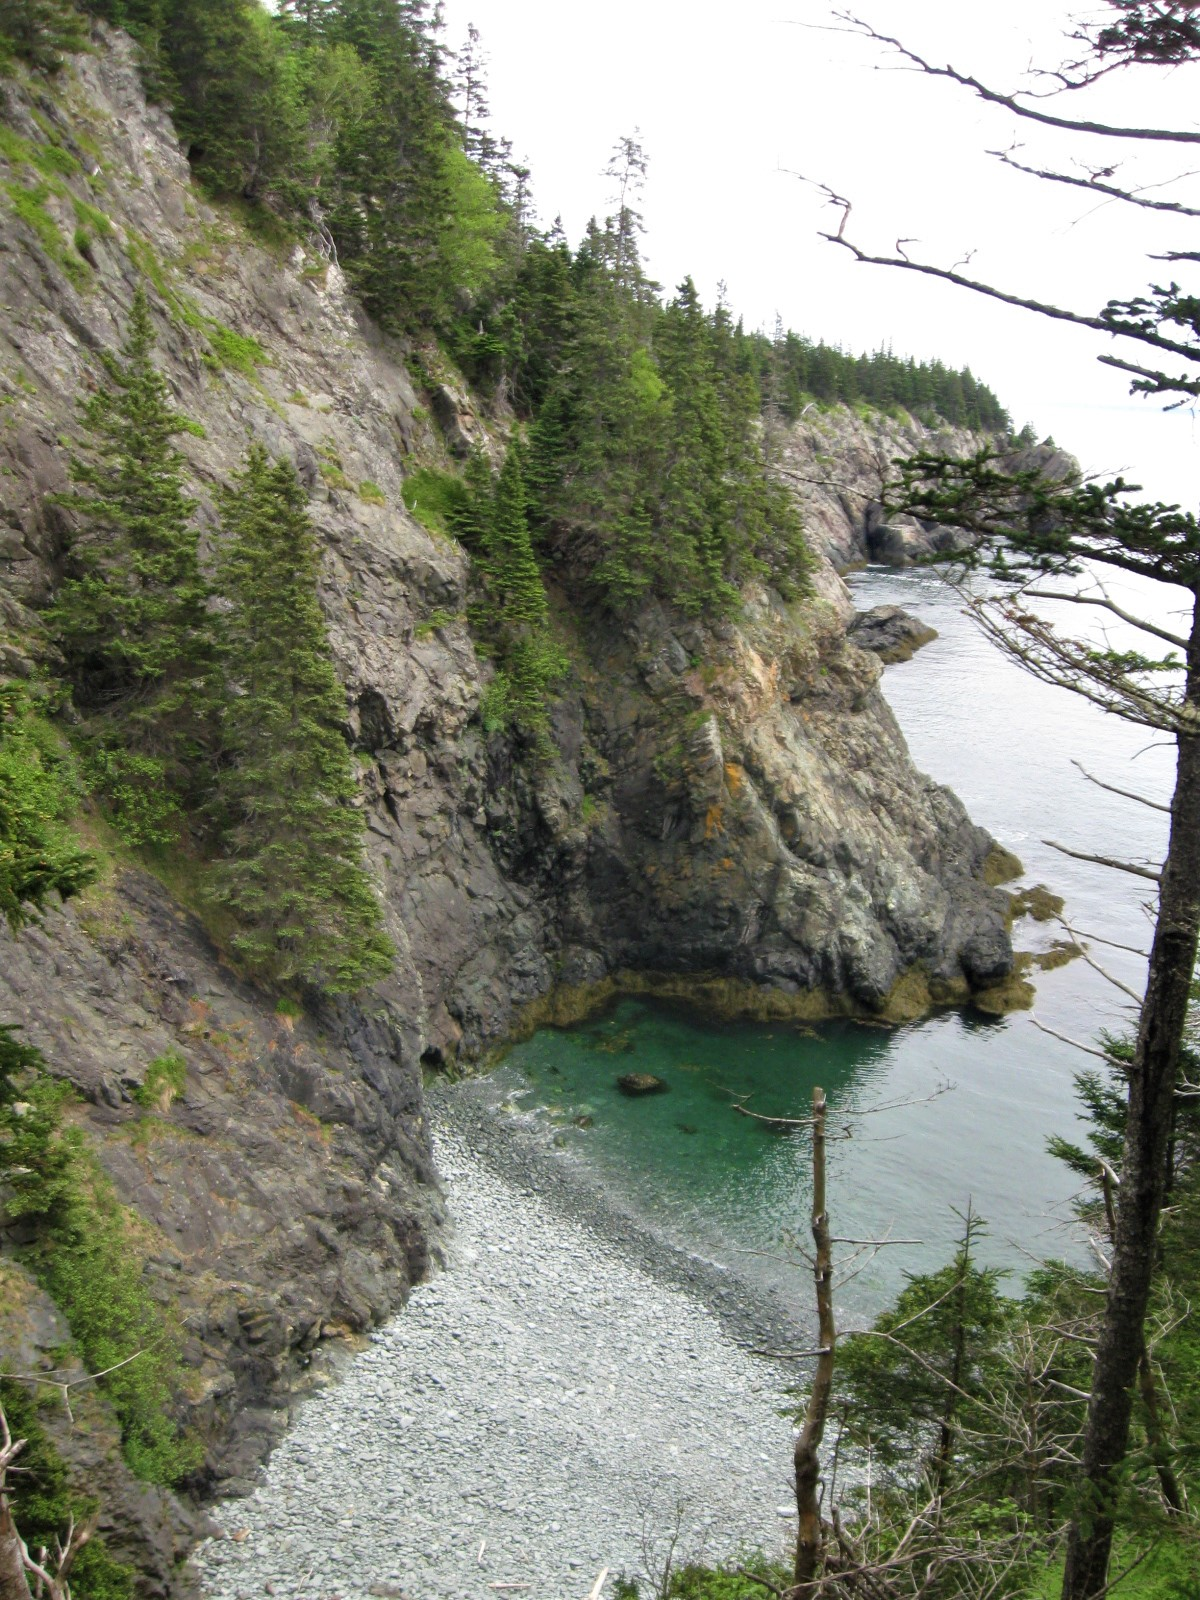 One of the beaches near The Pulpit